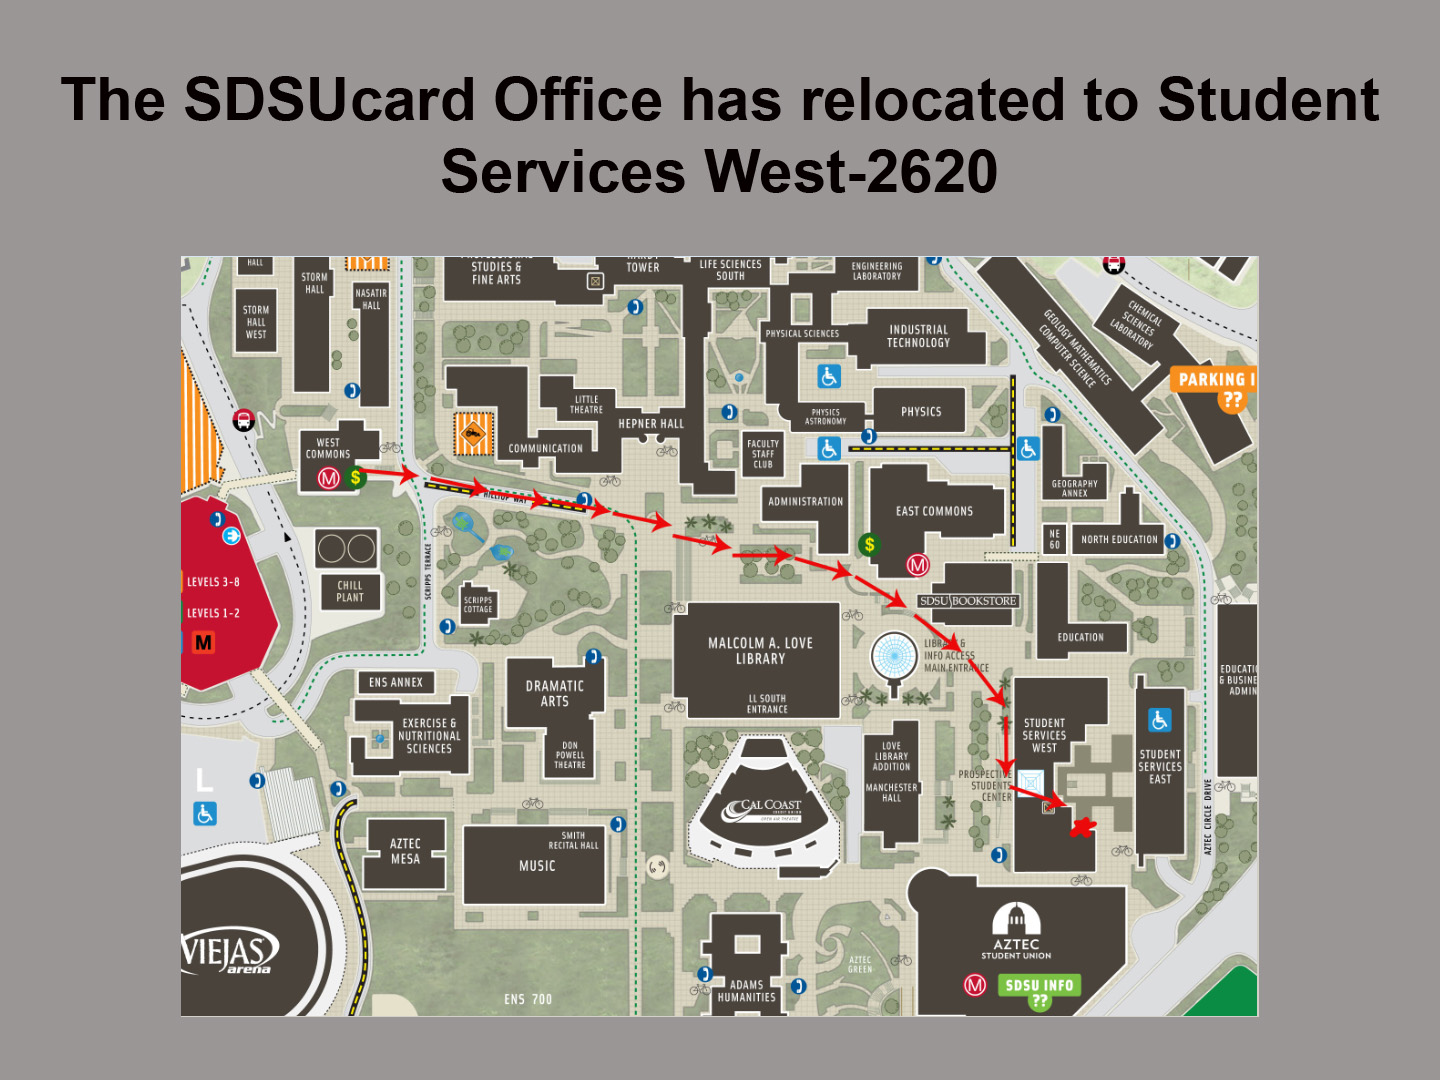 sdsu student account services Why It Is Not The Best Time ... on txst map, mesa college map, csu san marcos map, ssu map, north park map, claremont map, wright state university campus map, san francisco state university campus map, west chester university campus map, uc riverside map, northwestern map, long beach city college map, north dakota state university campus map, sjsu map, san diego map, usfca map, wcu map, usd map, ndsu map, texas a&m map,